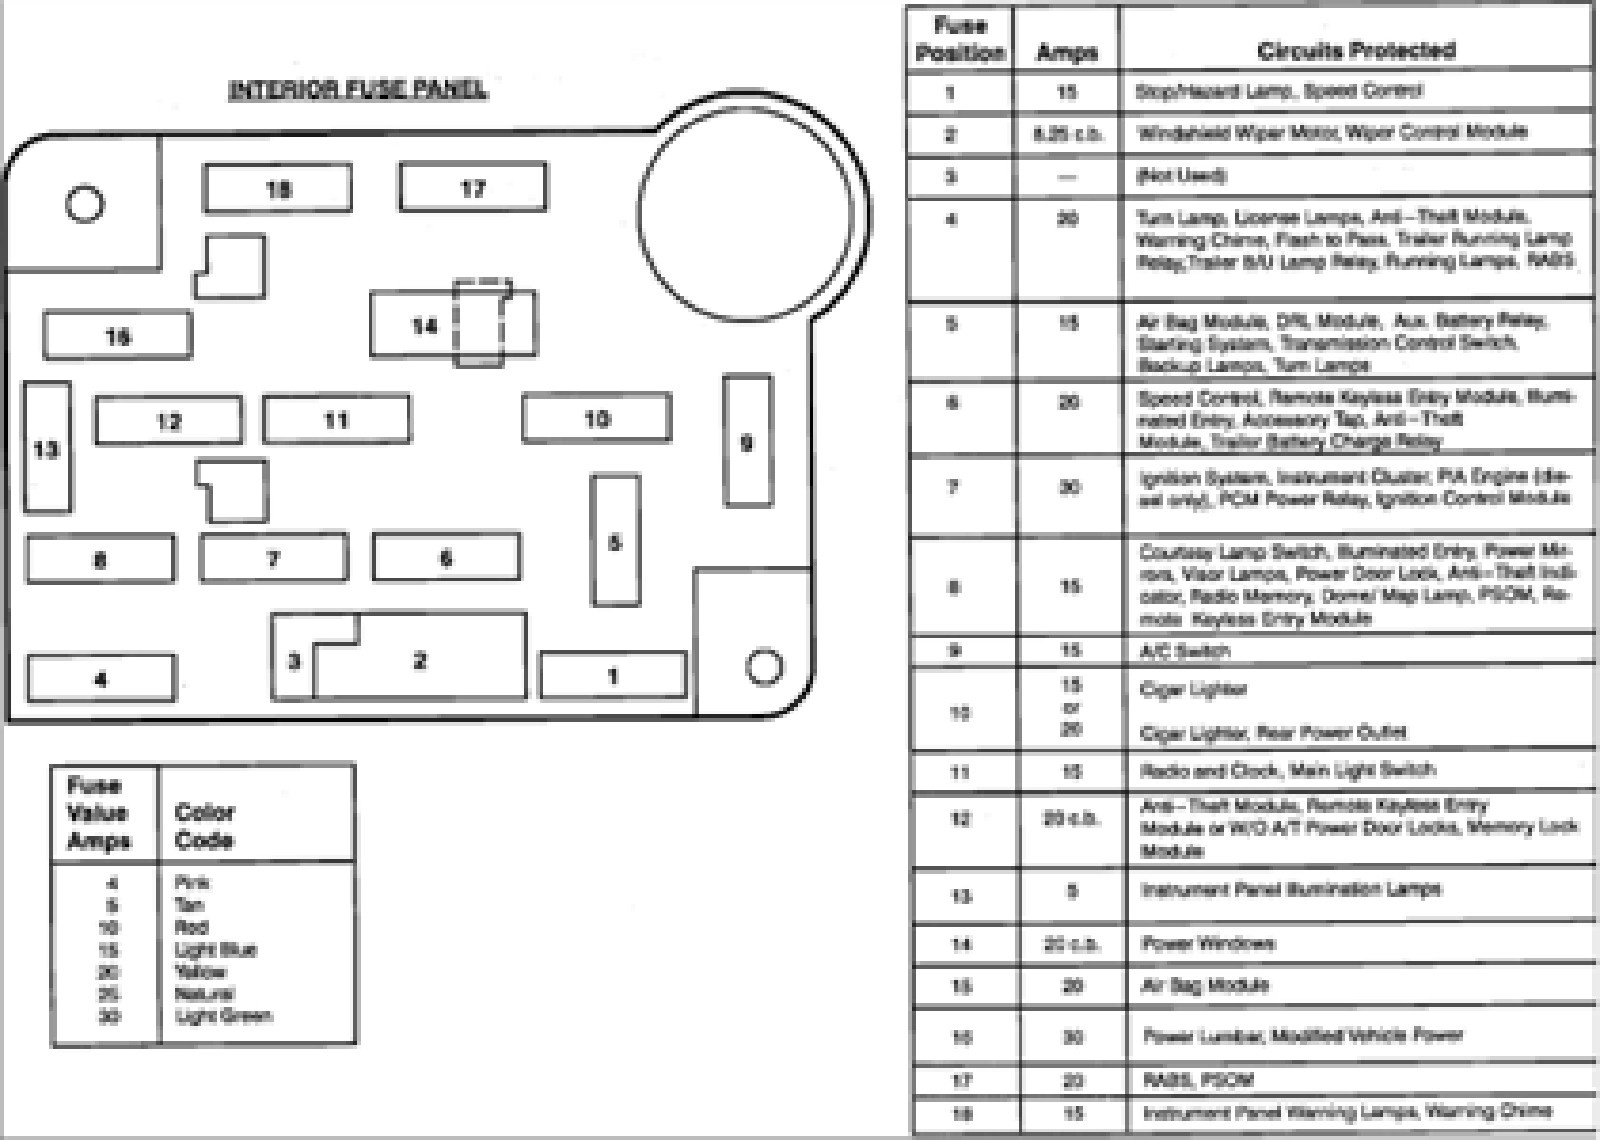 1993 gmc fuse box diagrams wiring diagram data rh 19 5 19 reisen fuer meister de